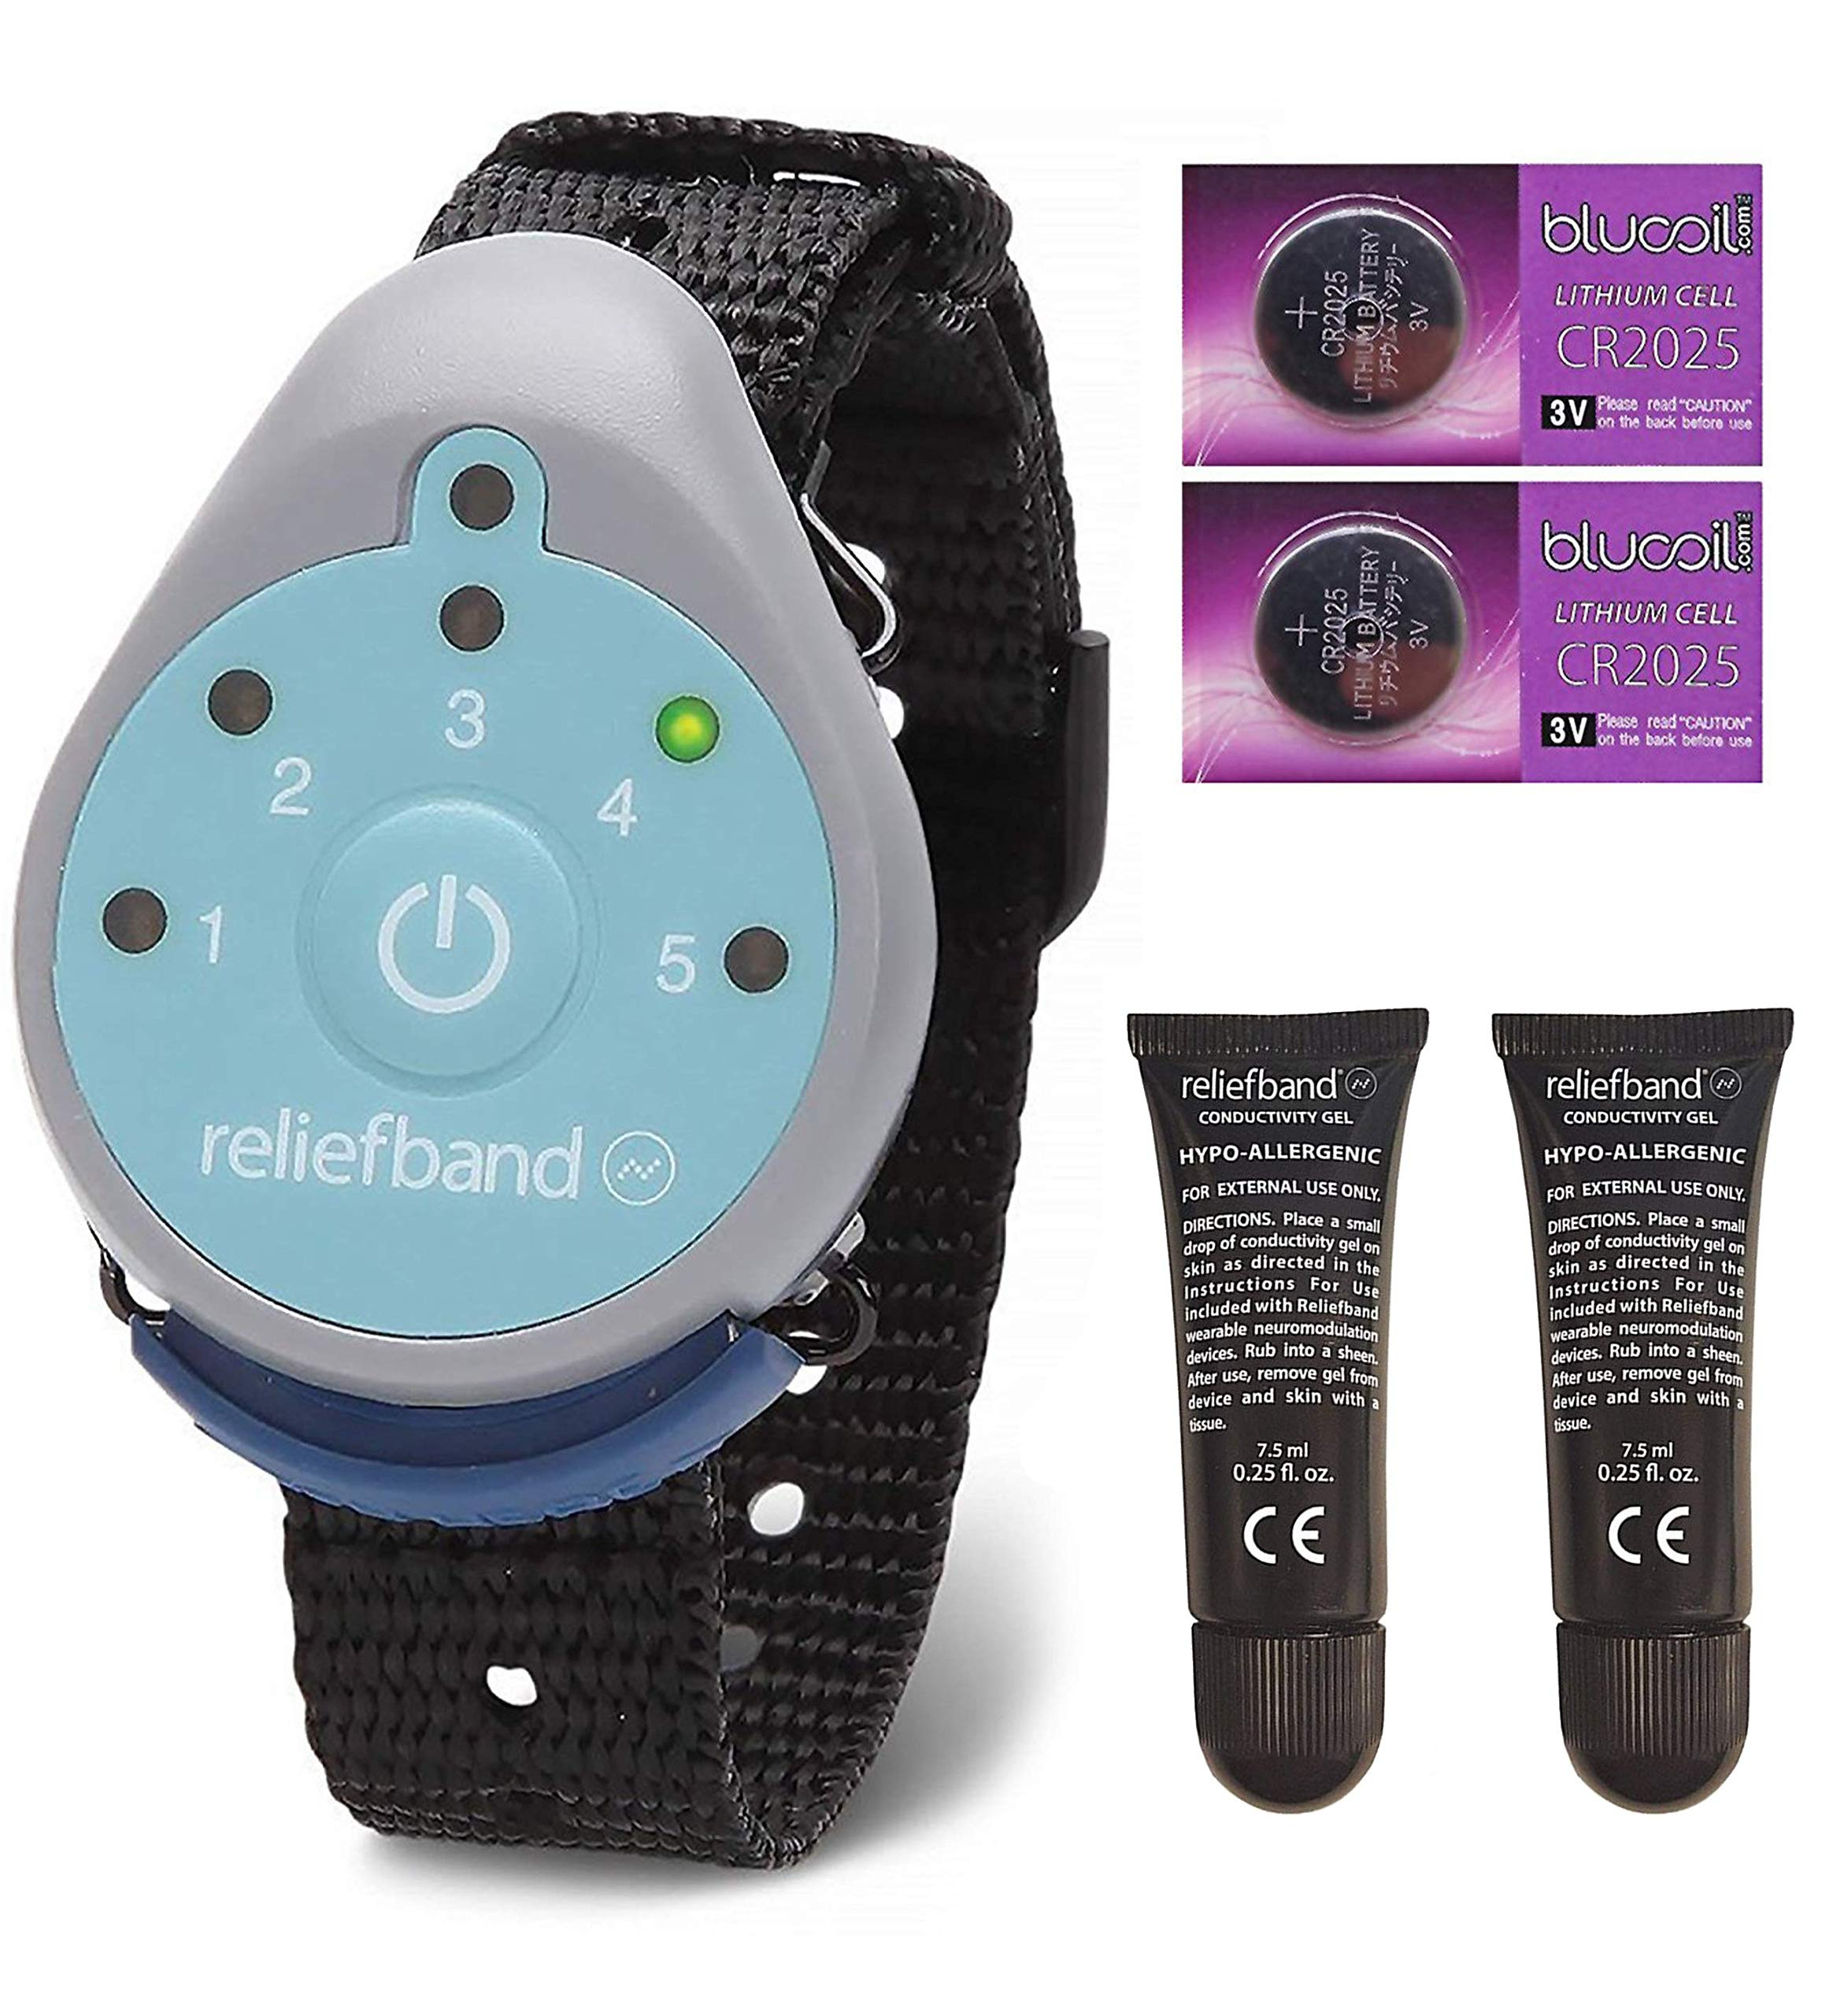 Reliefband for Motion and Morning Sickness Bundle with 2 Replacement Conductivity Gel Tubes 7.5ml, and 2 Blucoil CR2025 Batteries by blucoil